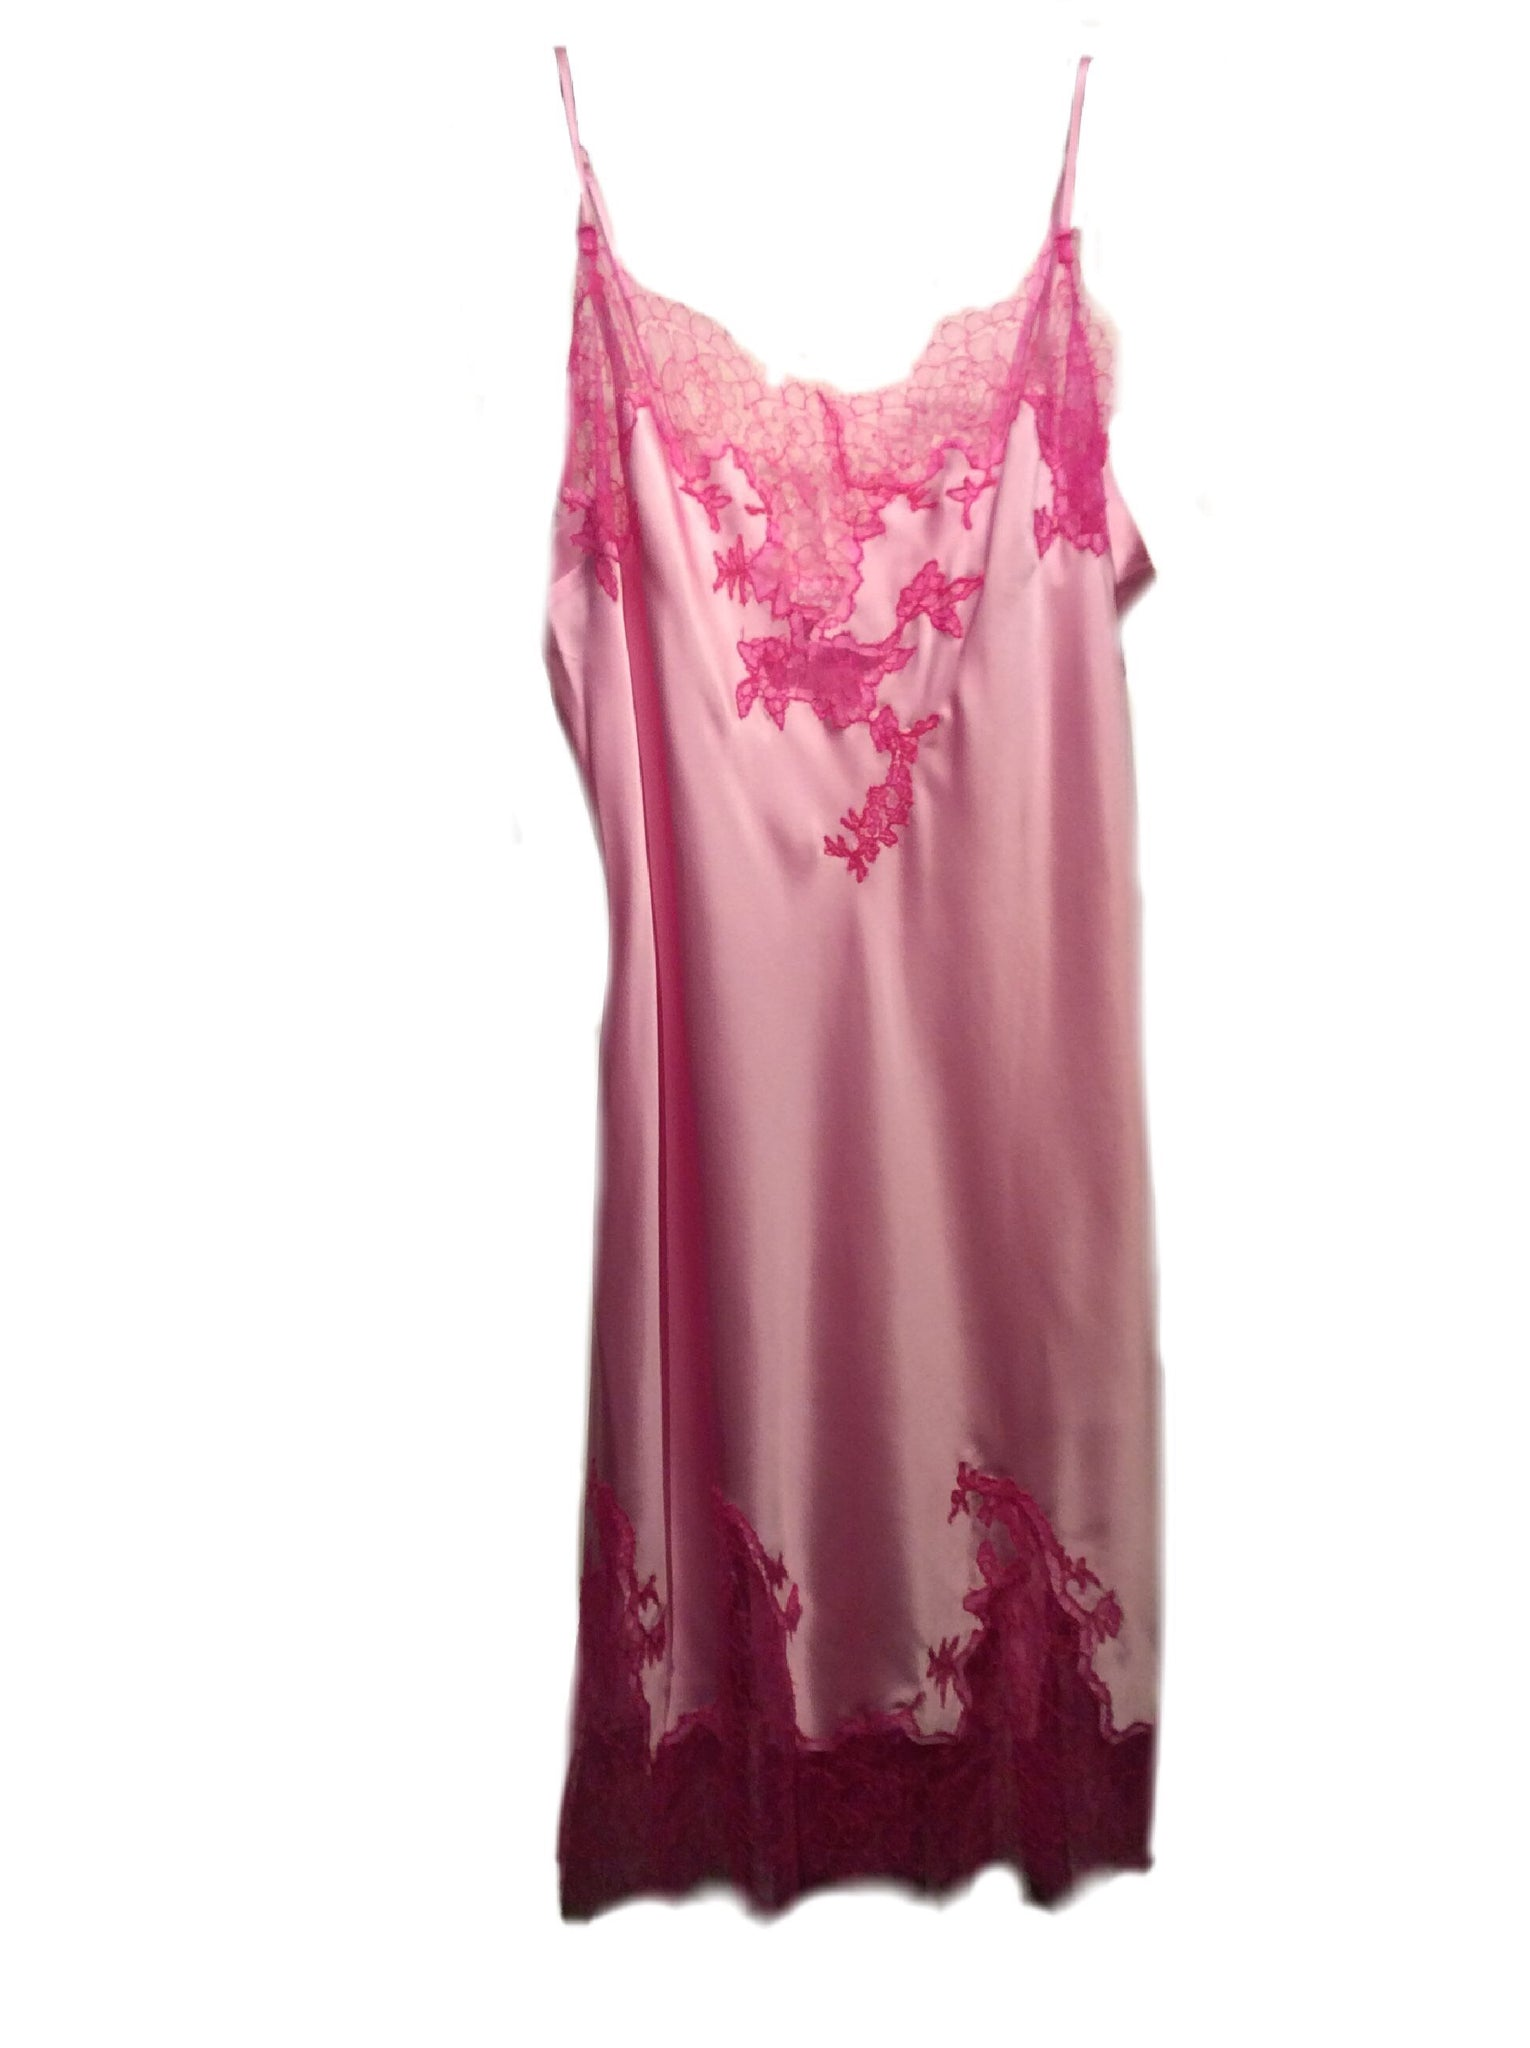 Baby Pink and Rose Marjolaine Silk Slip with Lace Applique